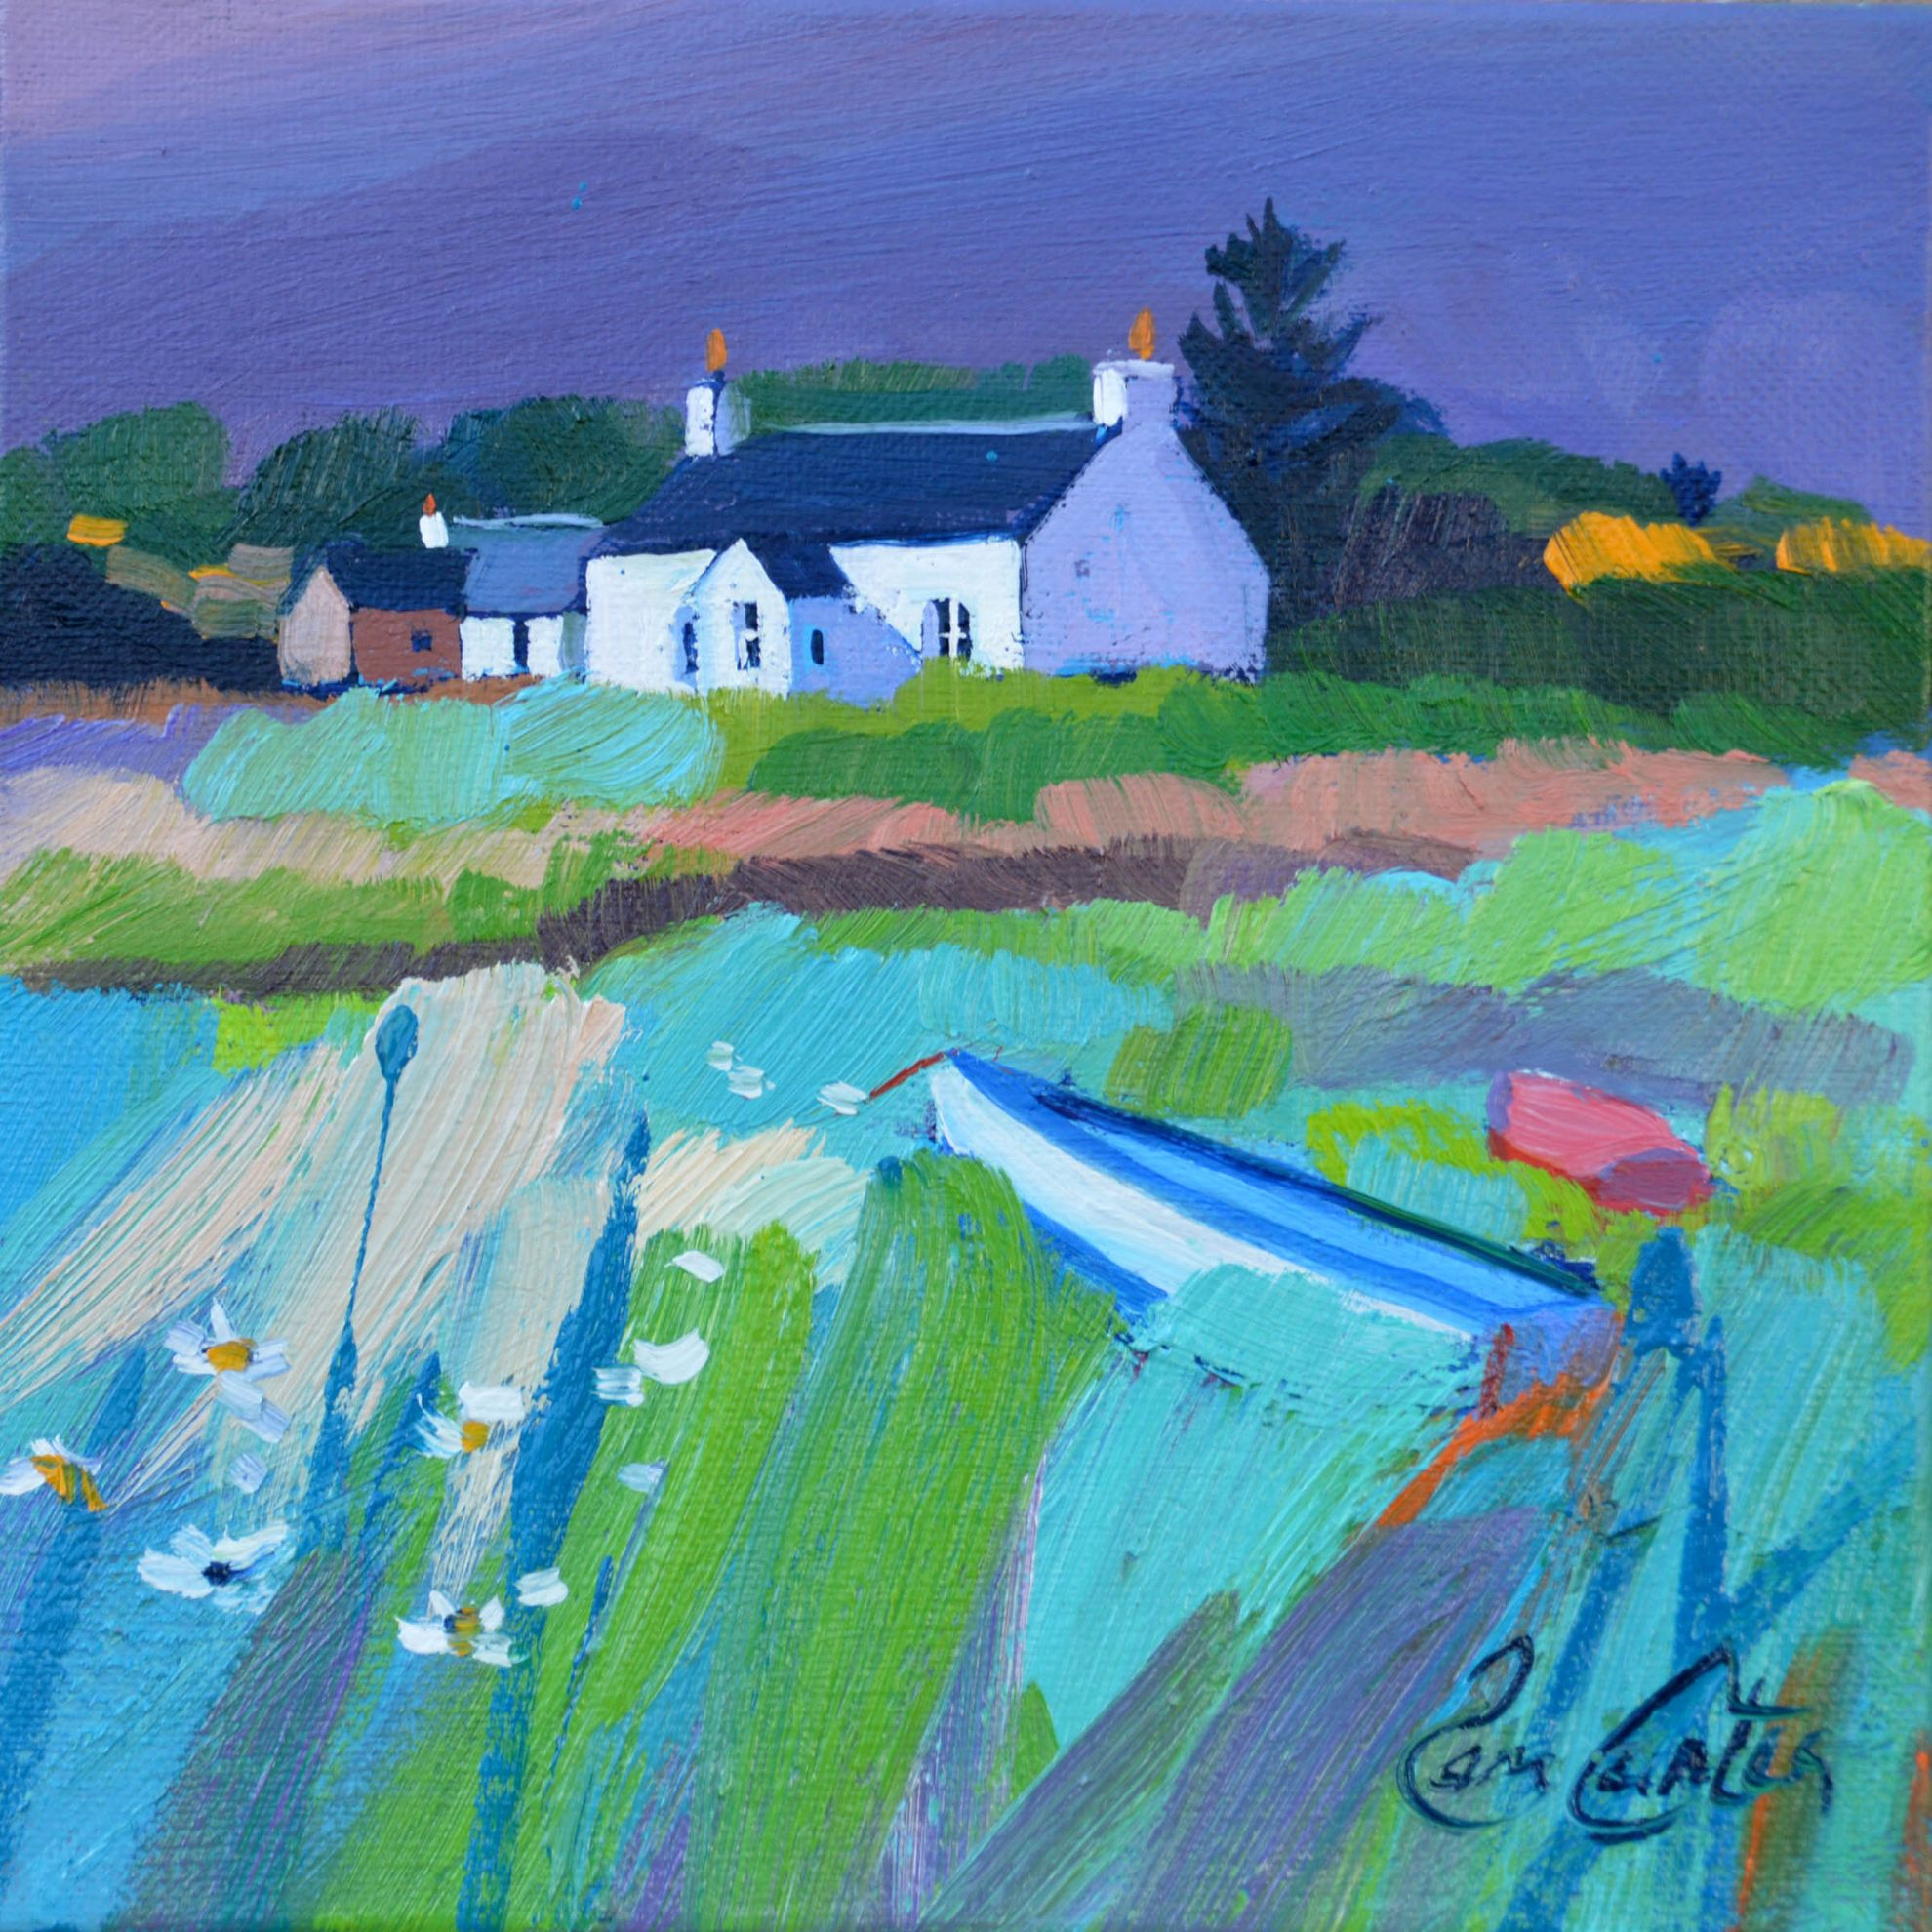 Gigha Crofts by Pam Carter